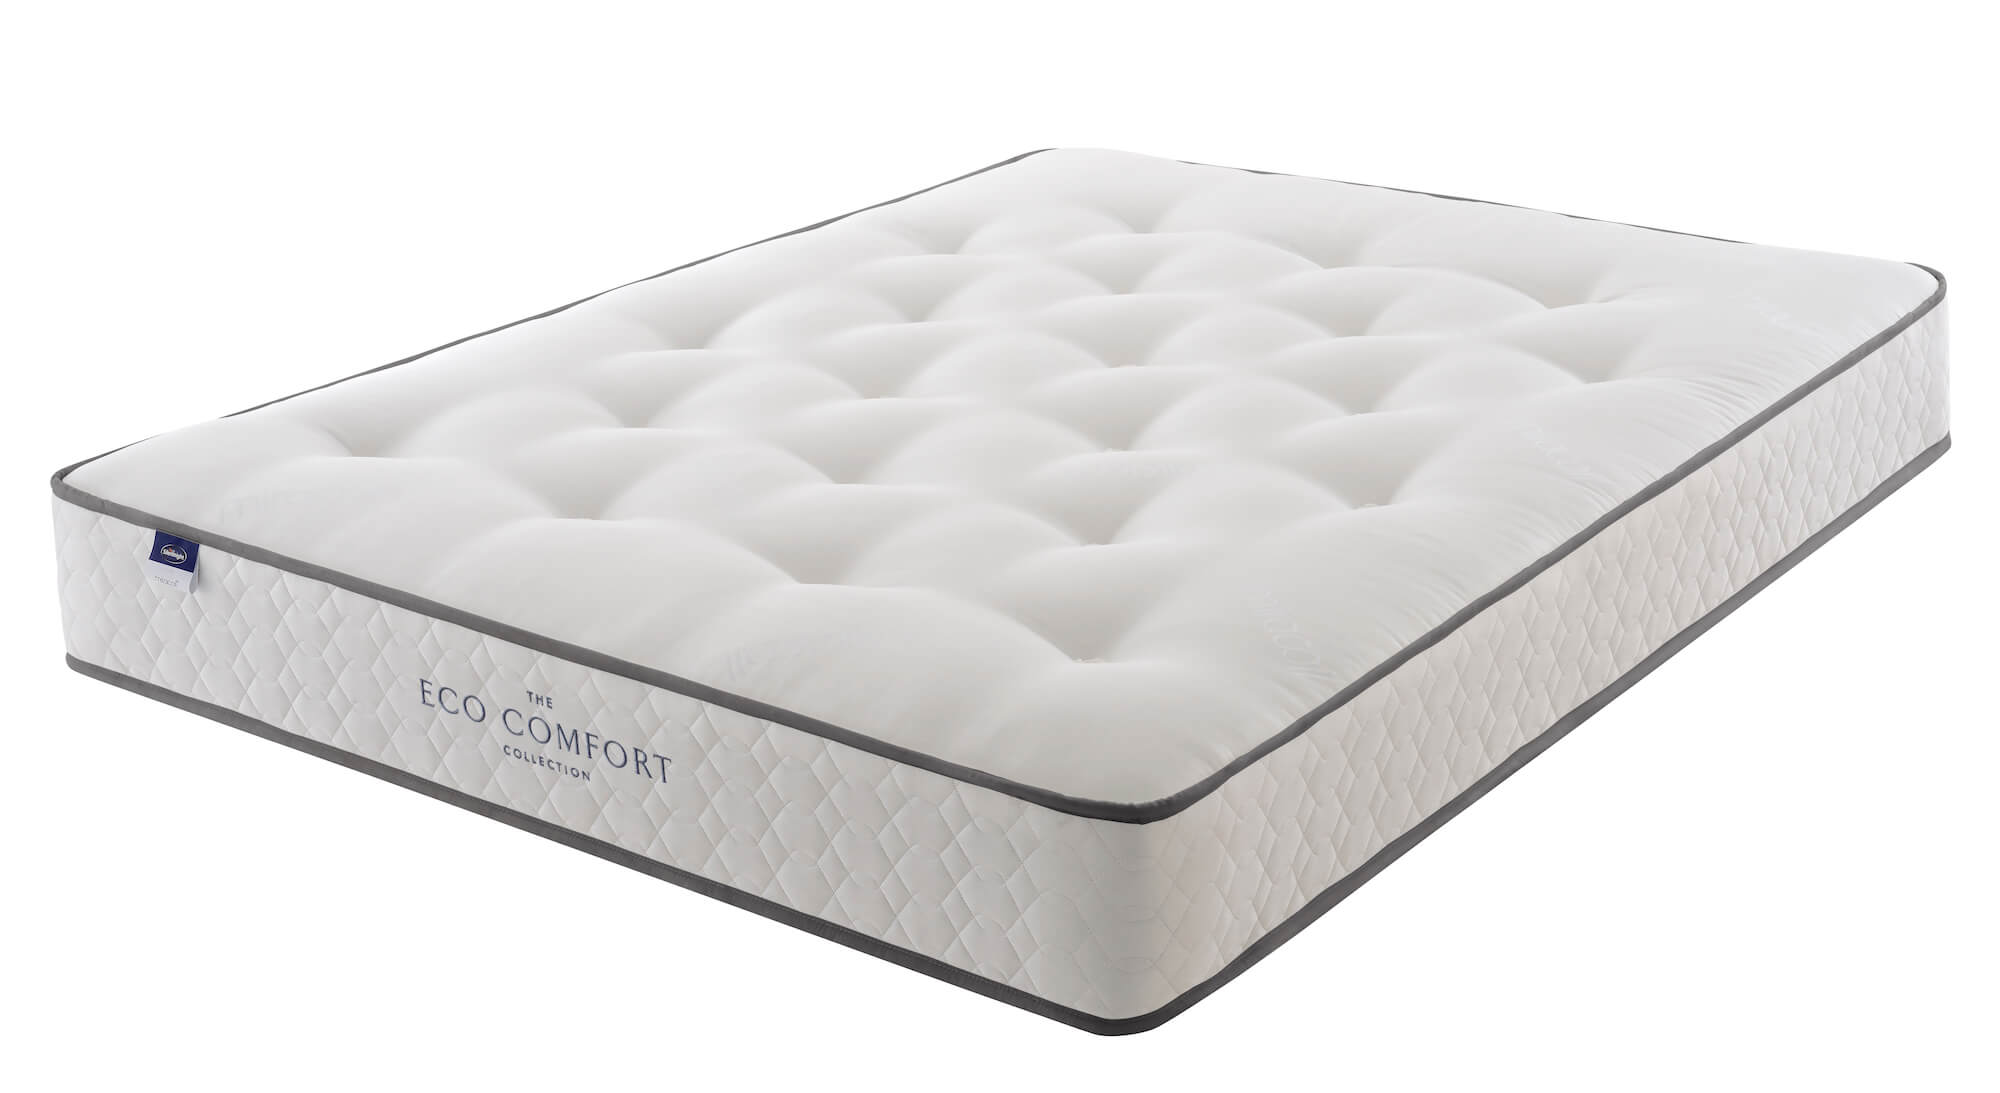 Silentnight Eco Comfort Miracoil Ortho Verve Mattress